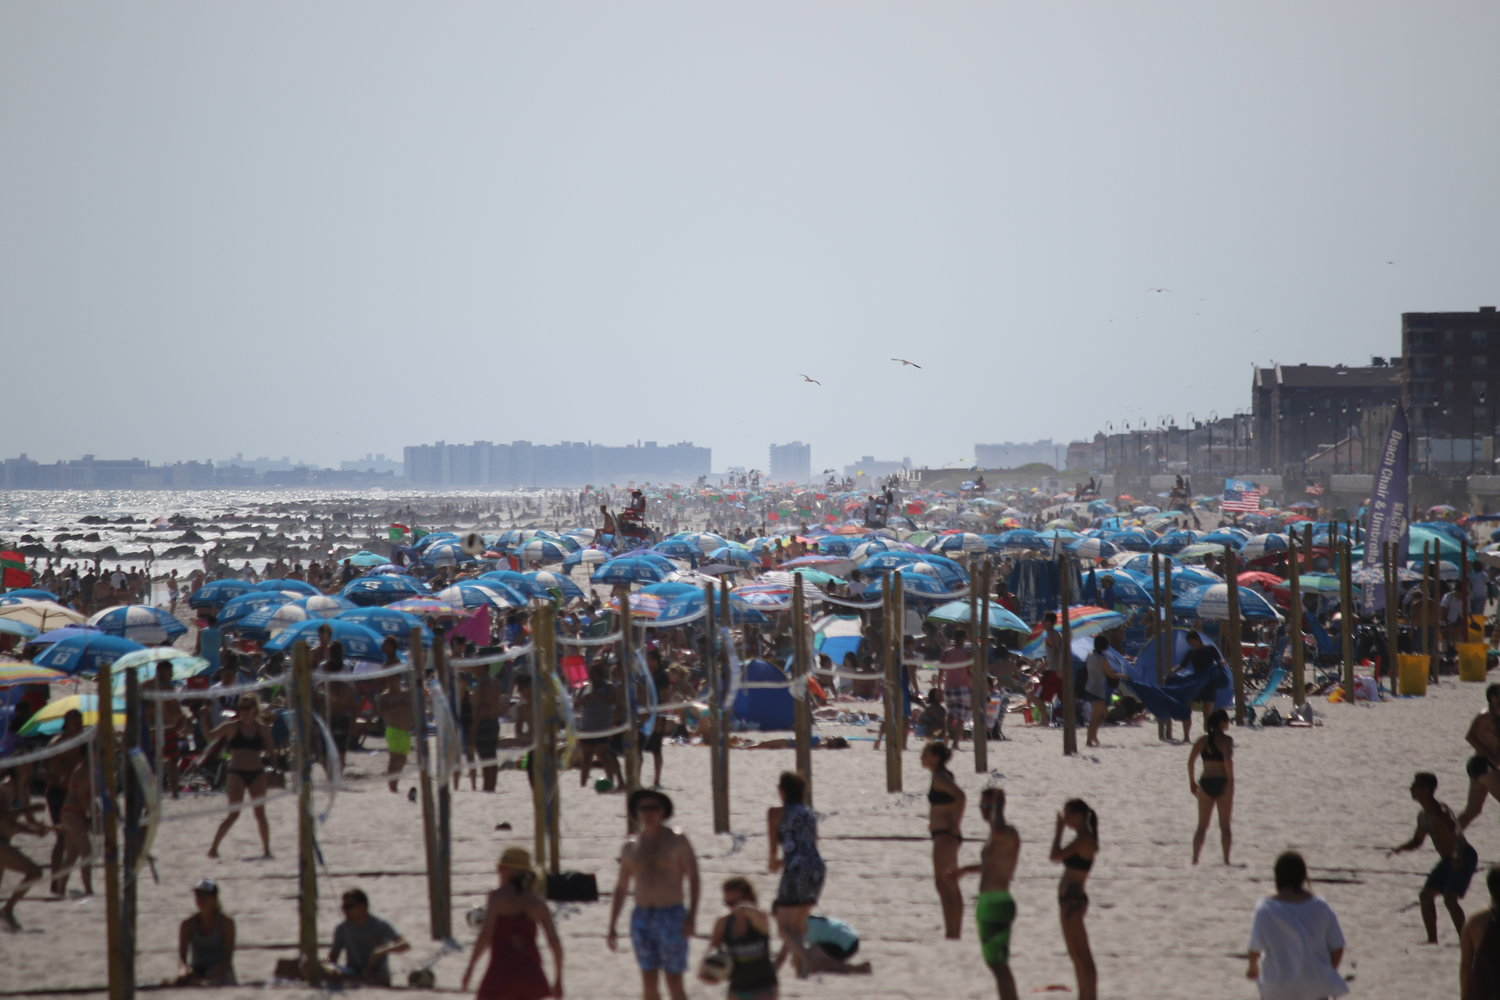 Long Beach Lifeguard Chief Paul Gillespie said he's expecting big crowds this weekend during a heatwave, and said that he's increasing his emergency response crews.